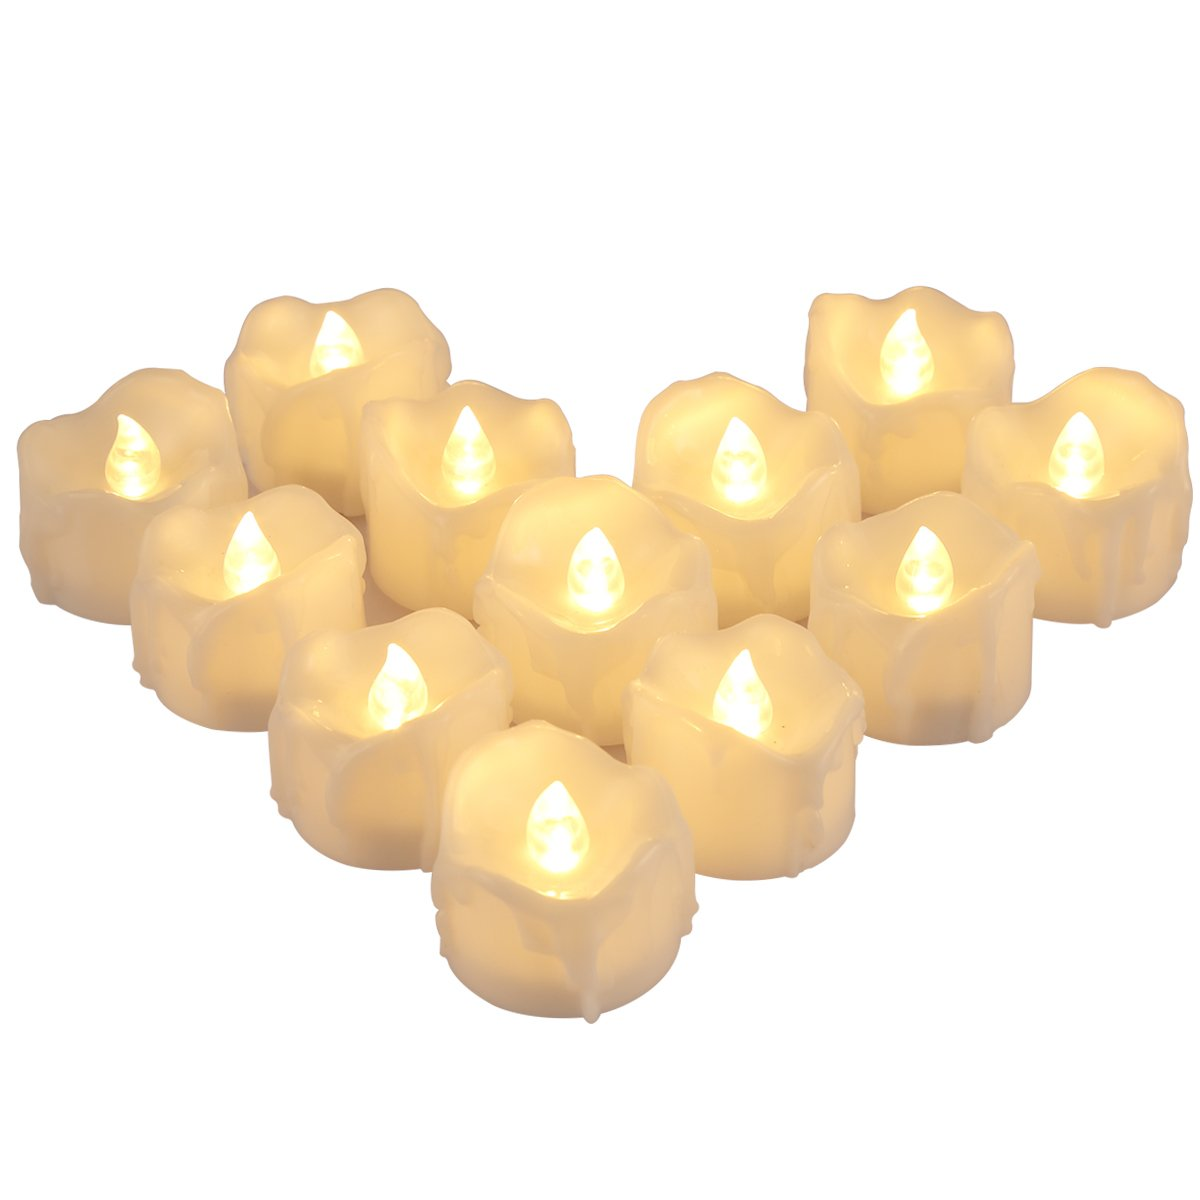 AMIR Flameless Candles, 12 PCS LED Tea Lights with Timer, Flickering Votive Candles for Christmas Thanksgiving Halloween Party Wedding Festival Celebration & Decoration, Battery Included (Warm White)